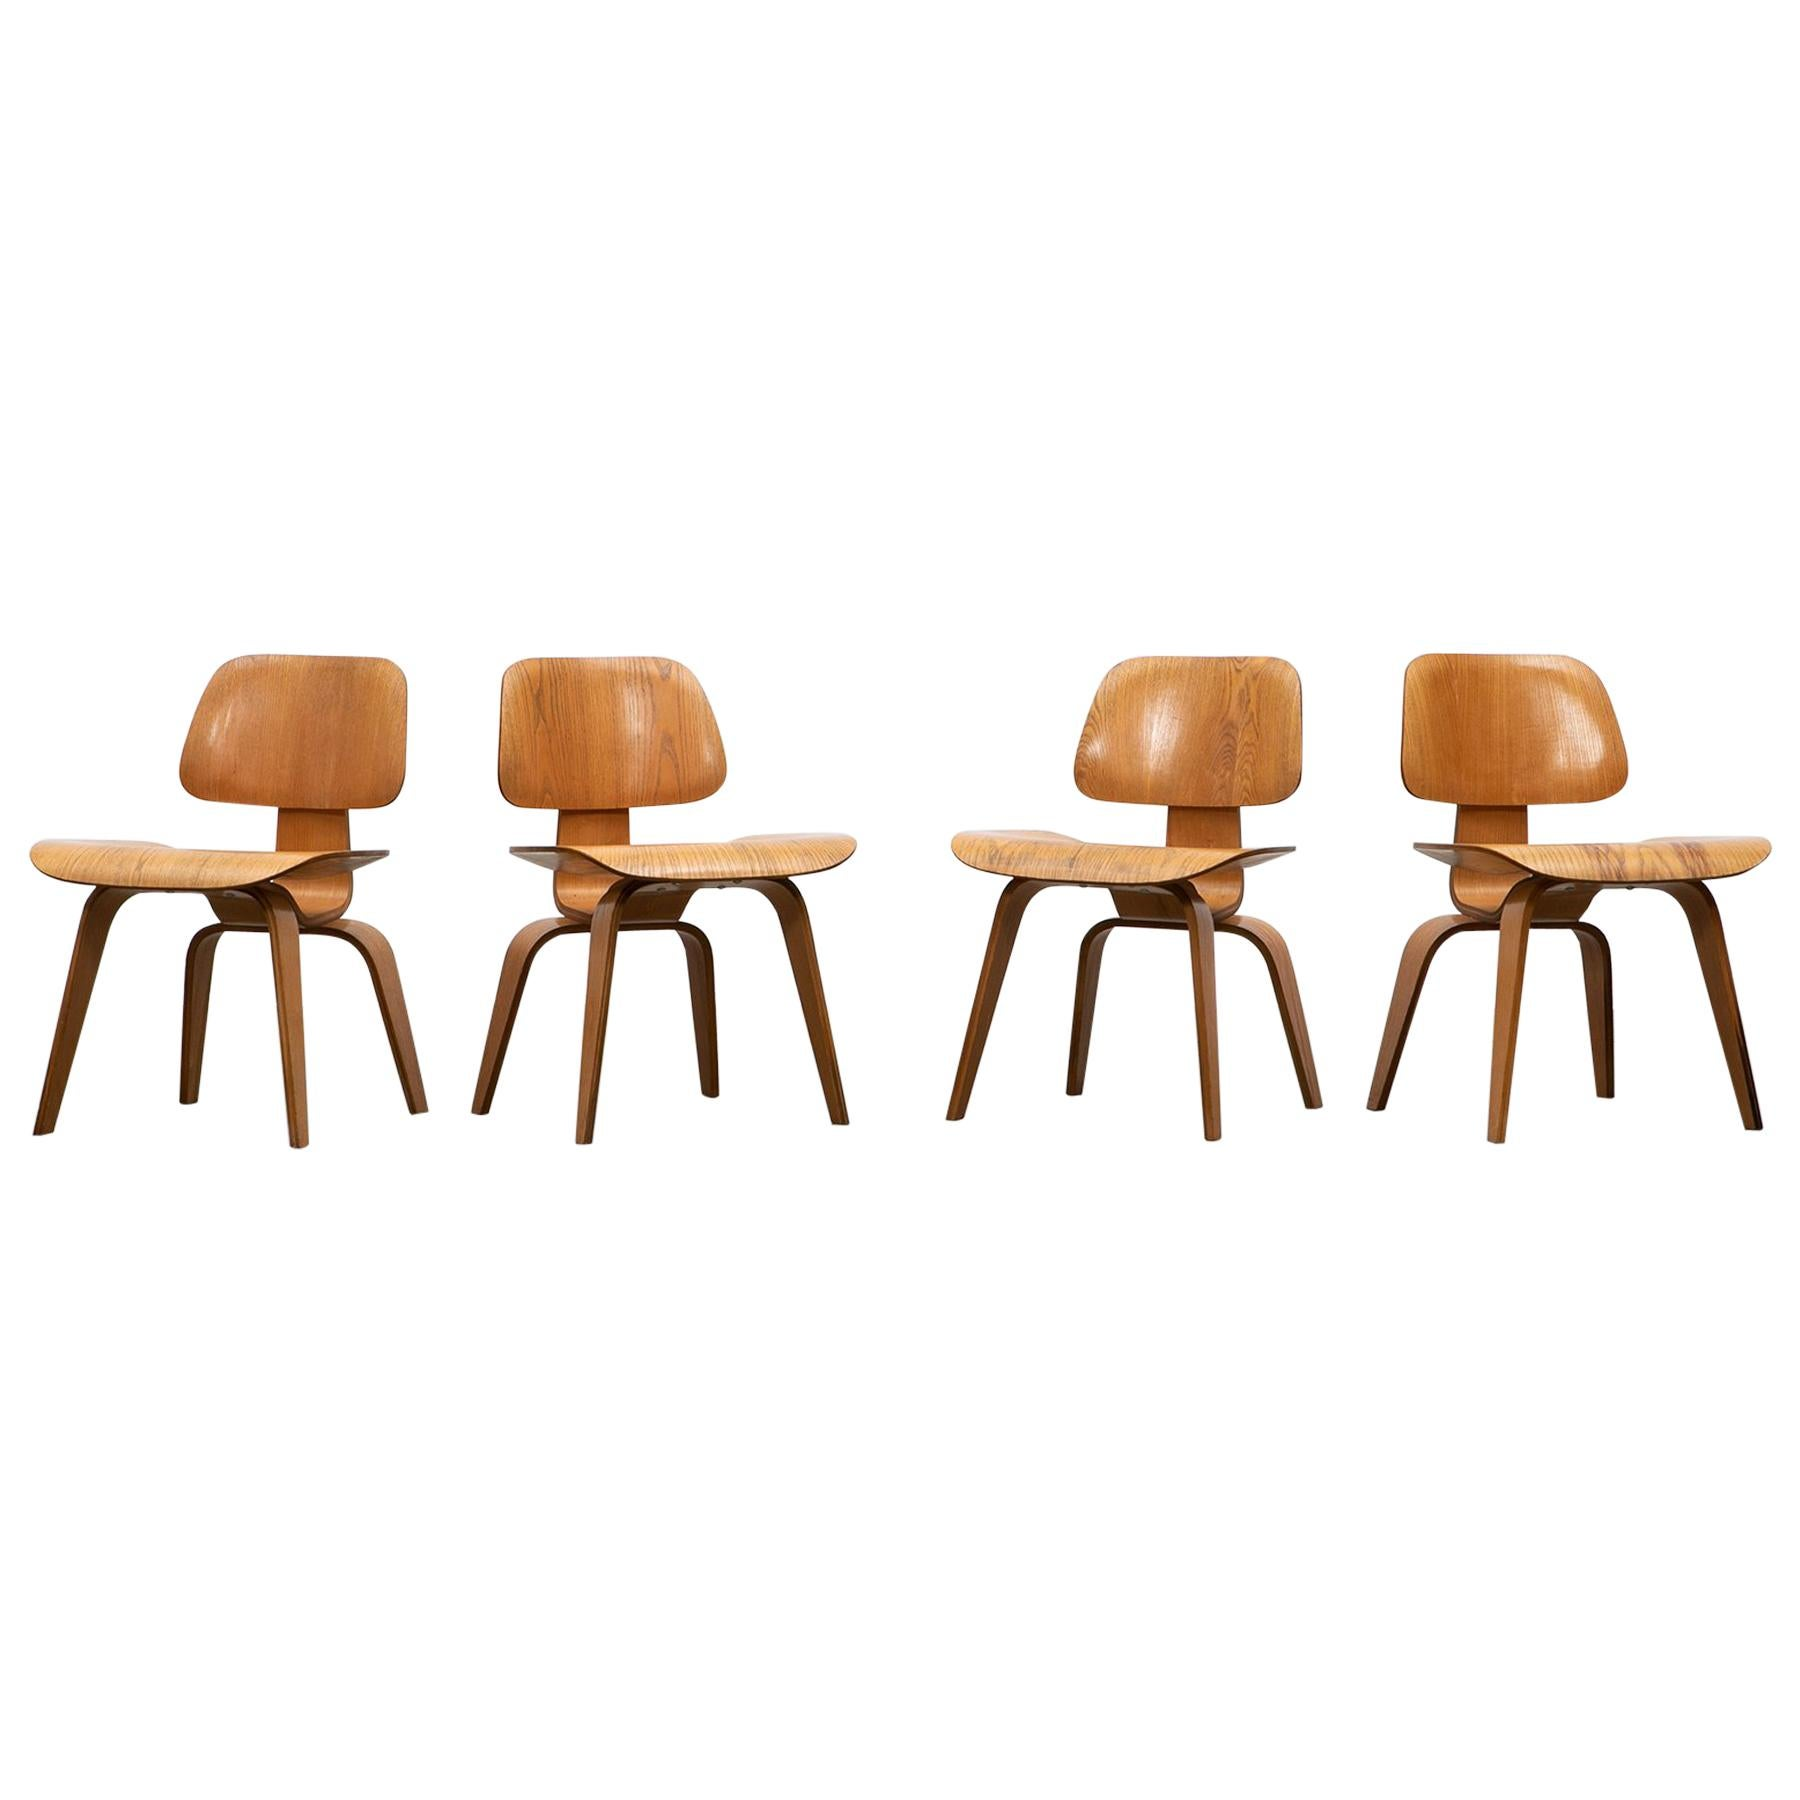 1940s Walnut Plywood DCW Chairs by Charles & Ray Eames, 4